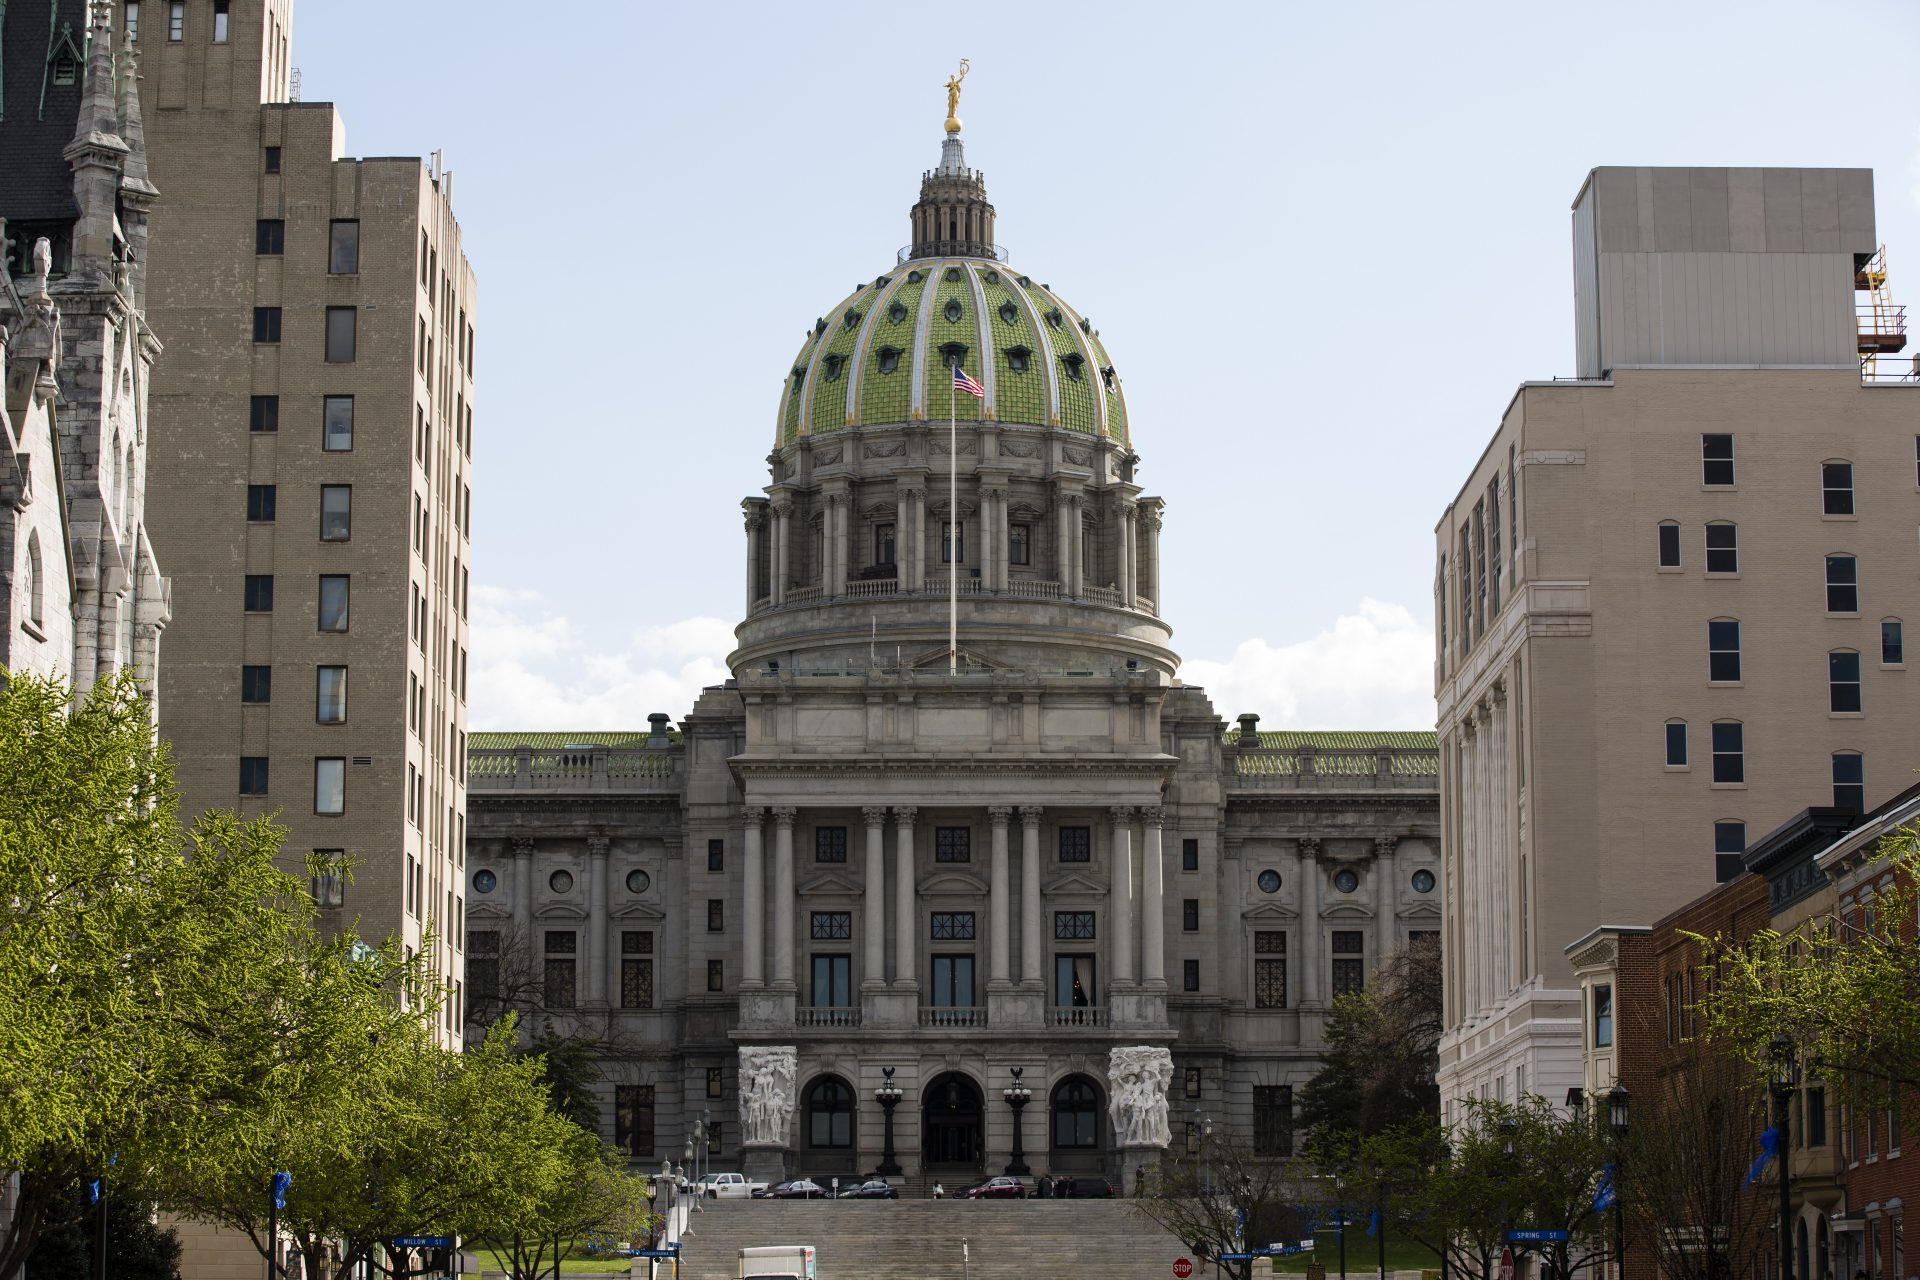 Shown is the Pennsylvania Capitol in Harrisburg, Pa. on the Wednesday, April 10, 2019.